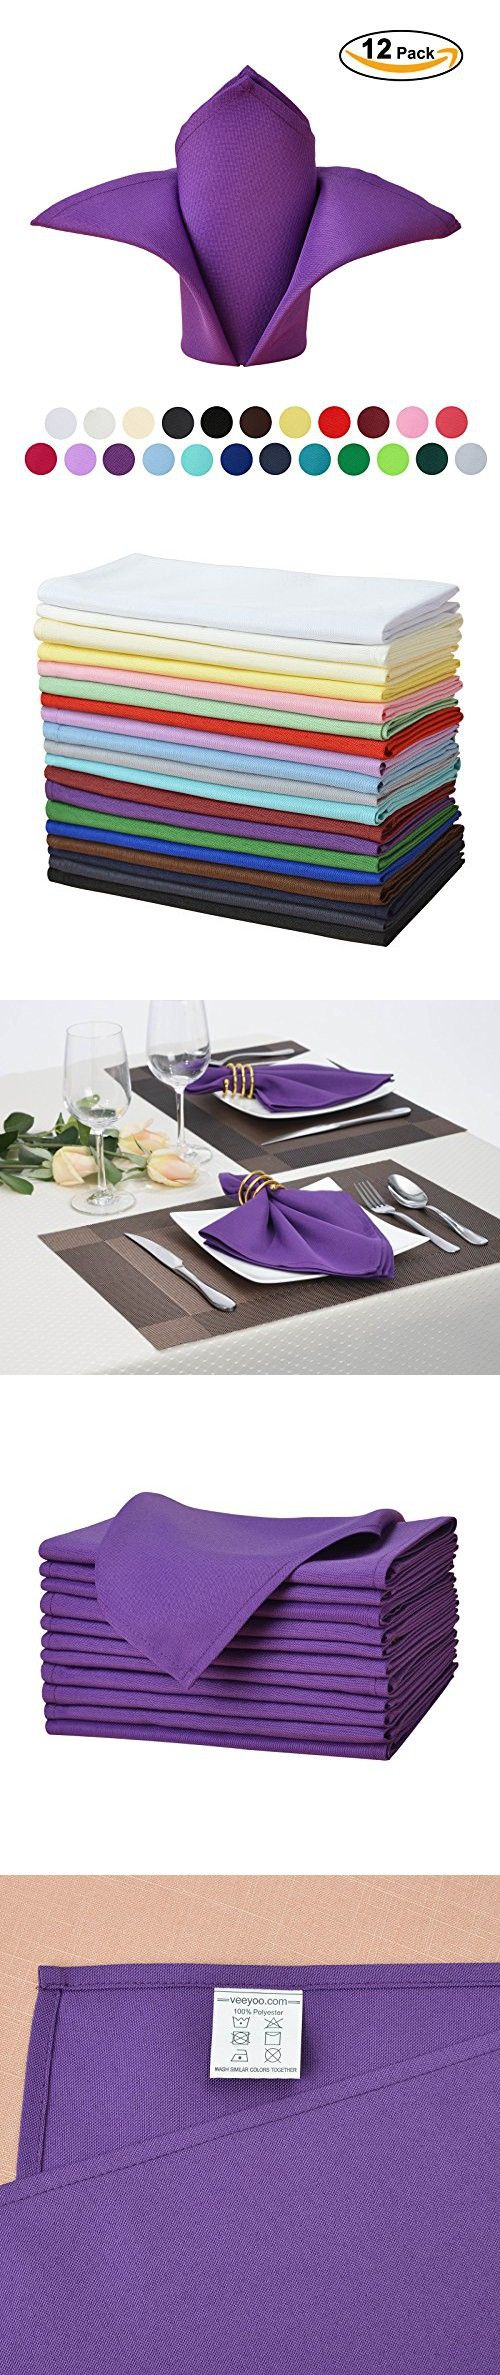 "VEEYOO Oversized 20x20"" Solid Polyester Napkins for Wedding Restaurant Dinner Use Machine Washable Durable Set of 12, Purple"